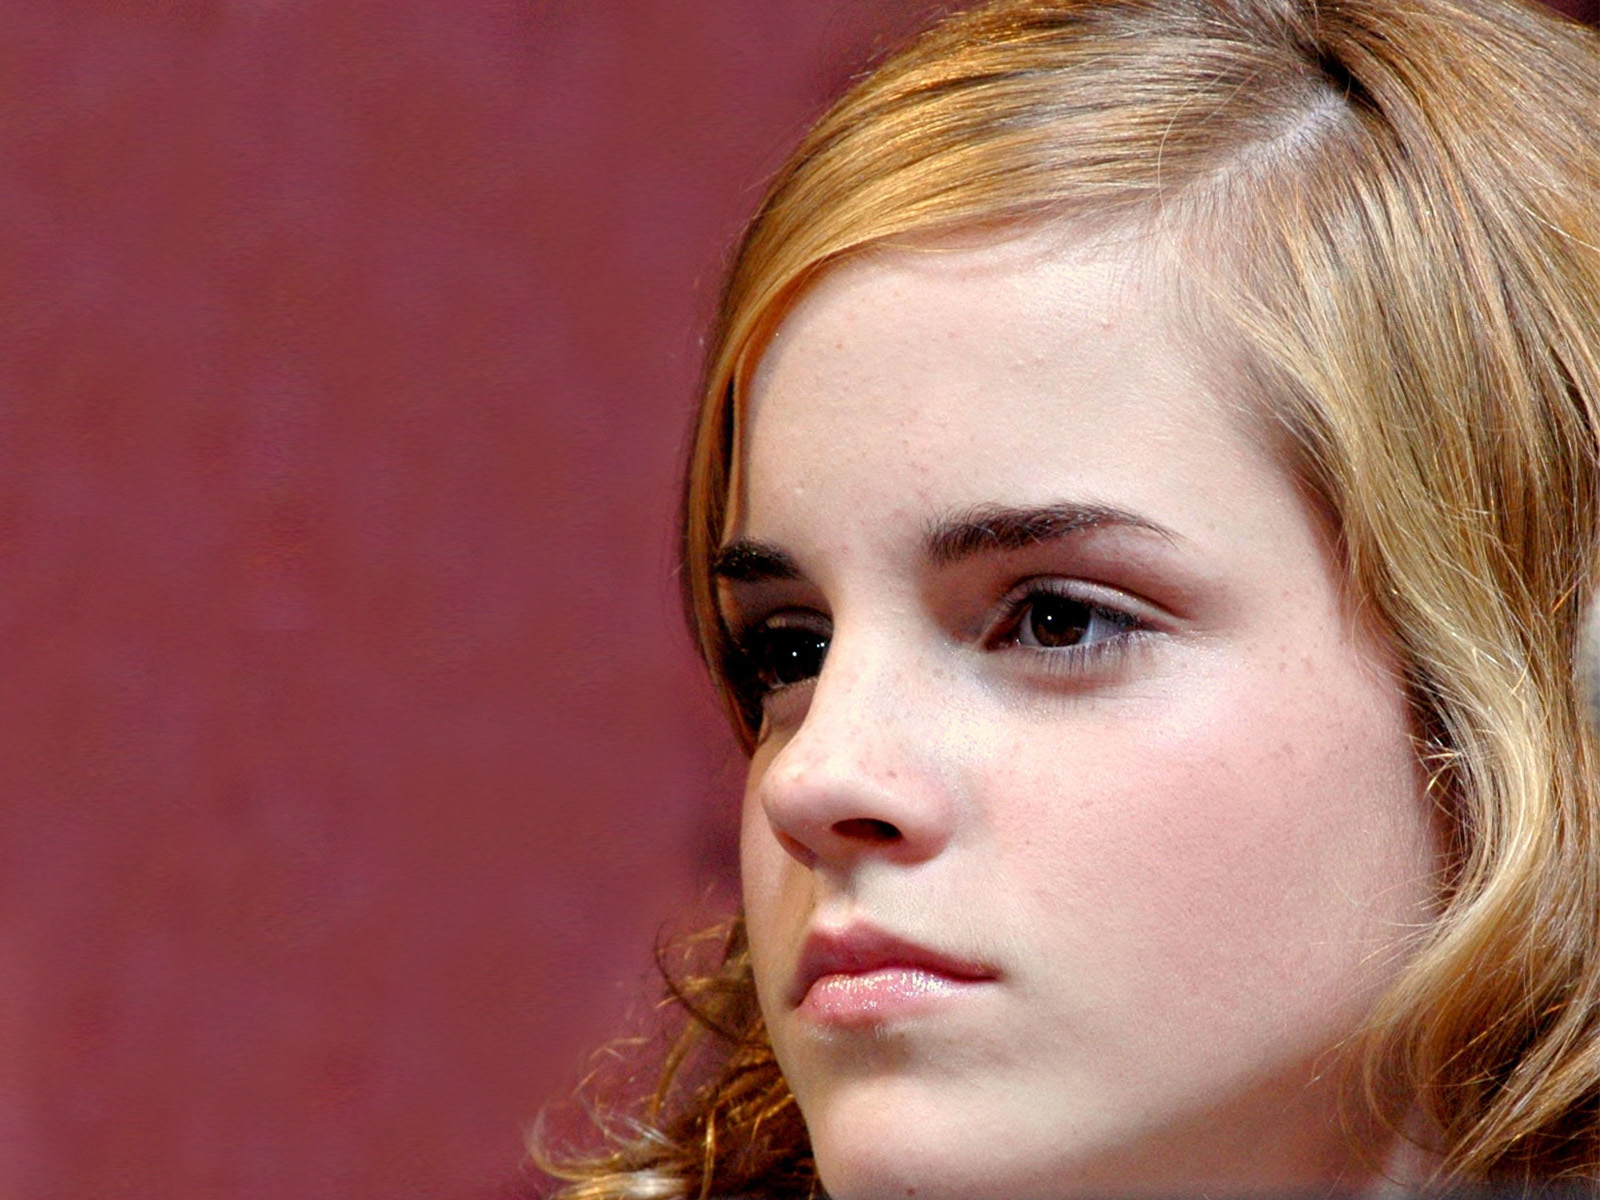 emma watson close up gorgeous face wallpapers | wallpapers hd